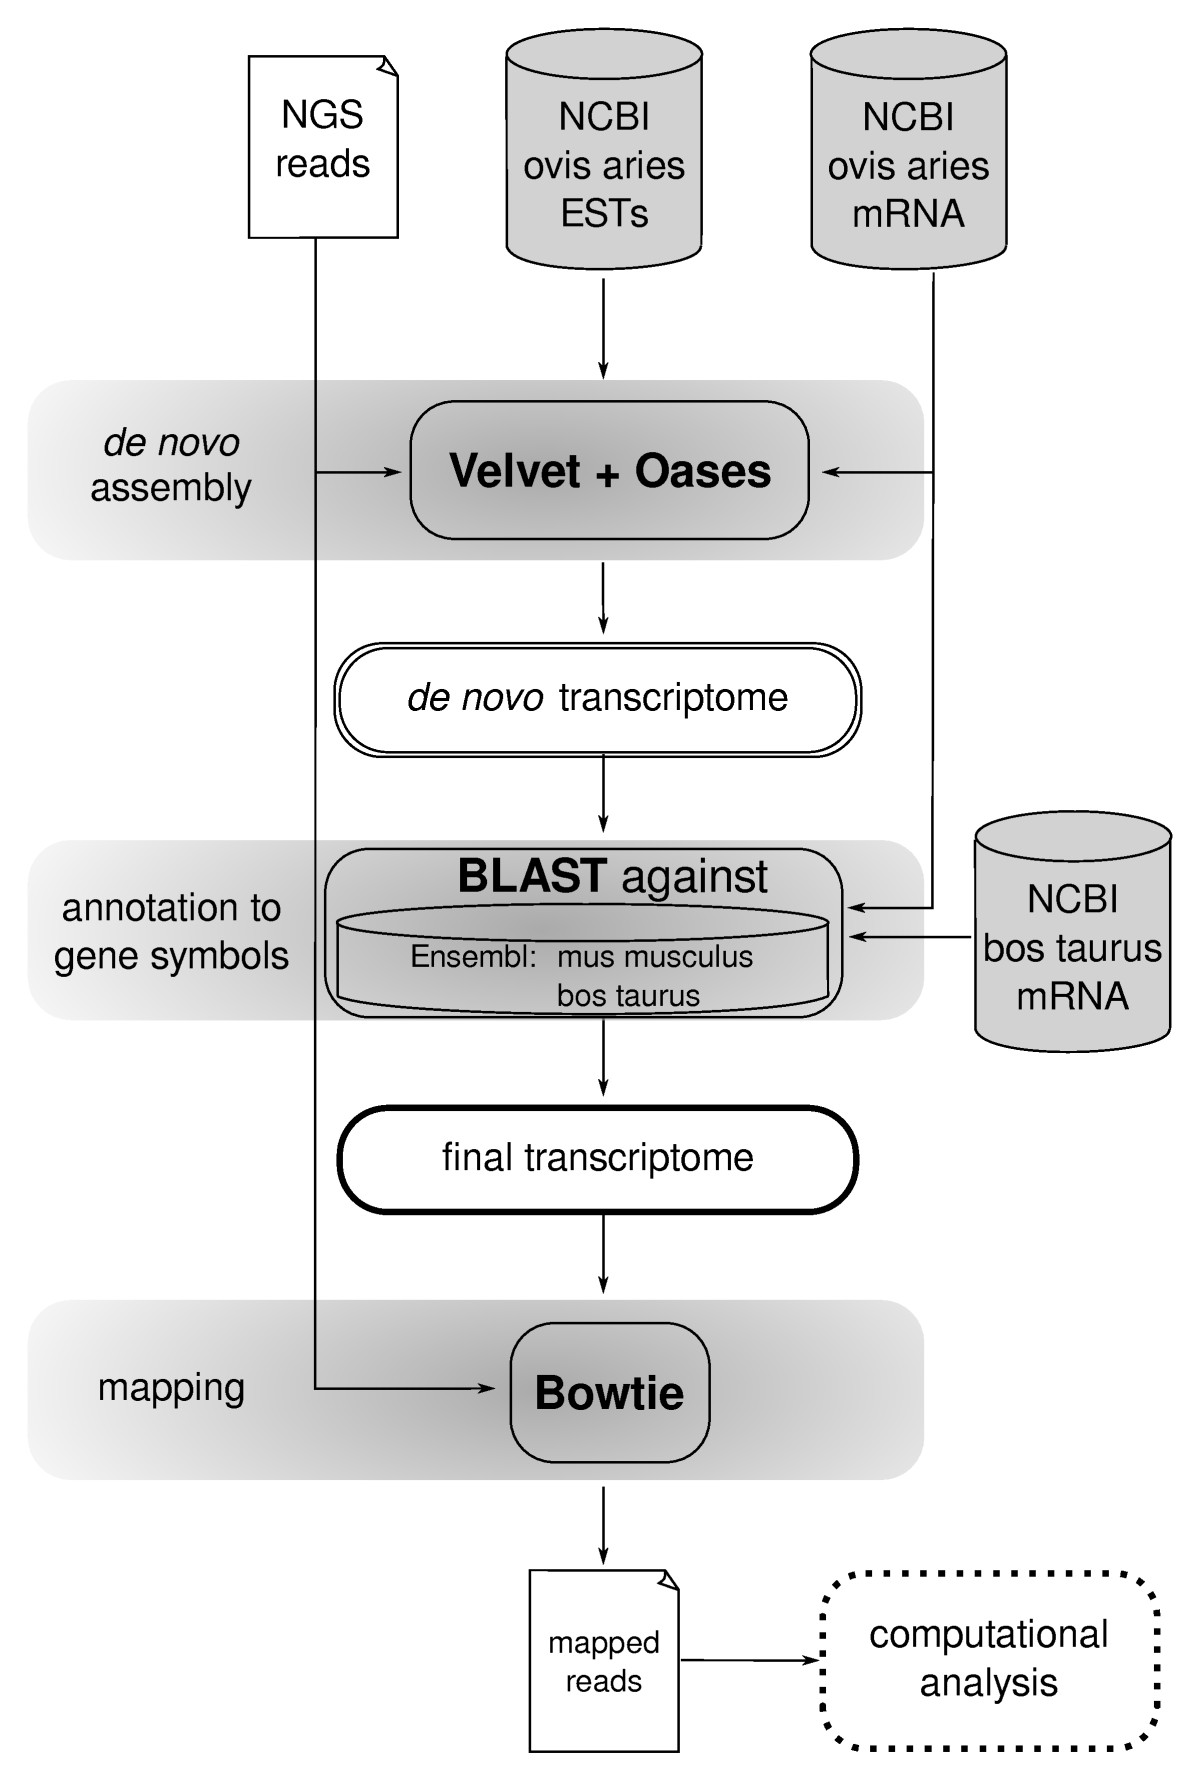 http://static-content.springer.com/image/art%3A10.1186%2F1471-2164-12-158/MediaObjects/12864_2010_3292_Fig2_HTML.jpg